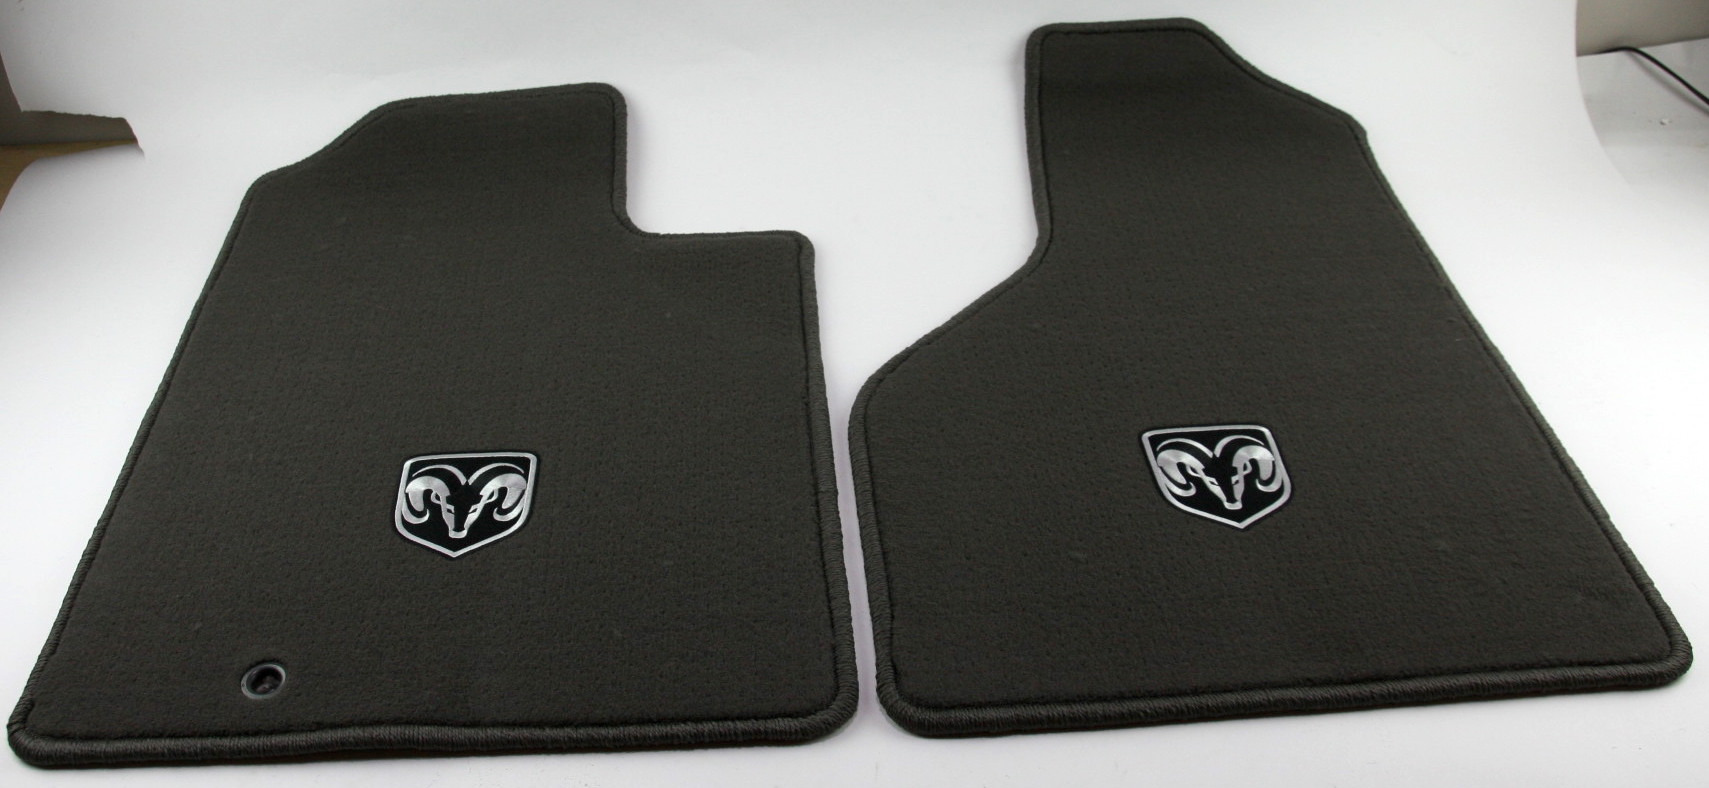 New OEM Mopar 82209560 06-08 Dodge Ram 1500 Front Carpeted Floor Mats Dark Khaki - image 1